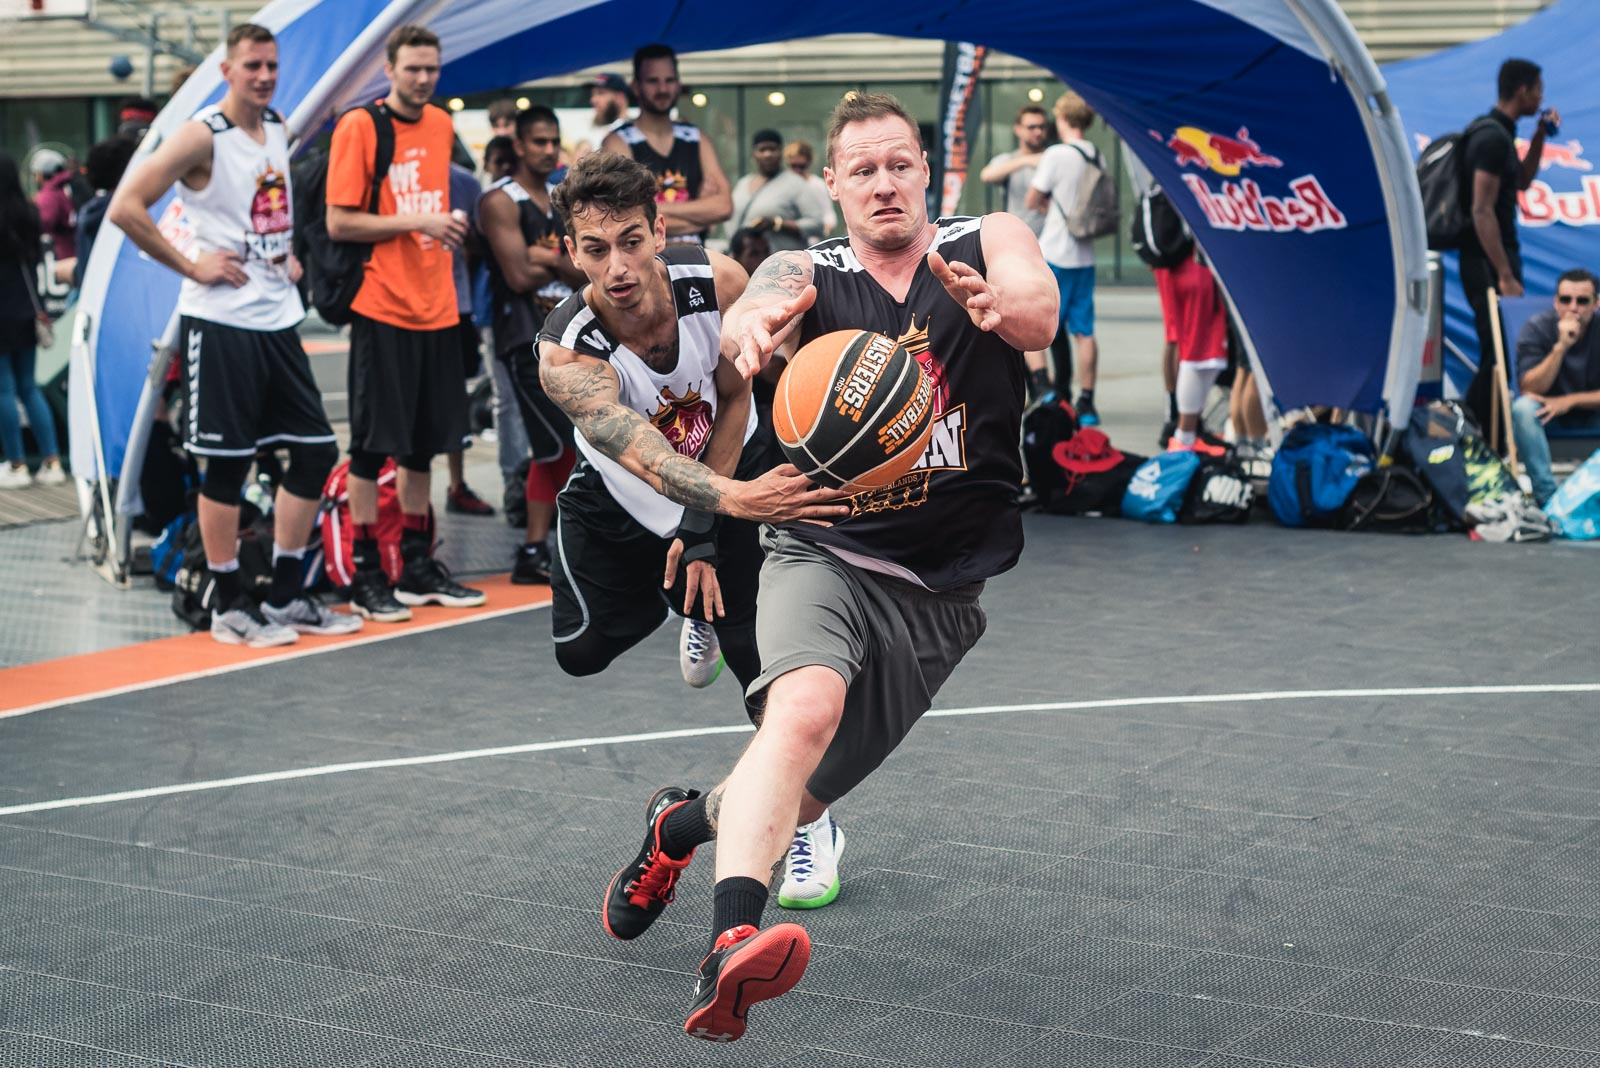 Action shot during Red Bull Reign basketball tournament in Rotterdam